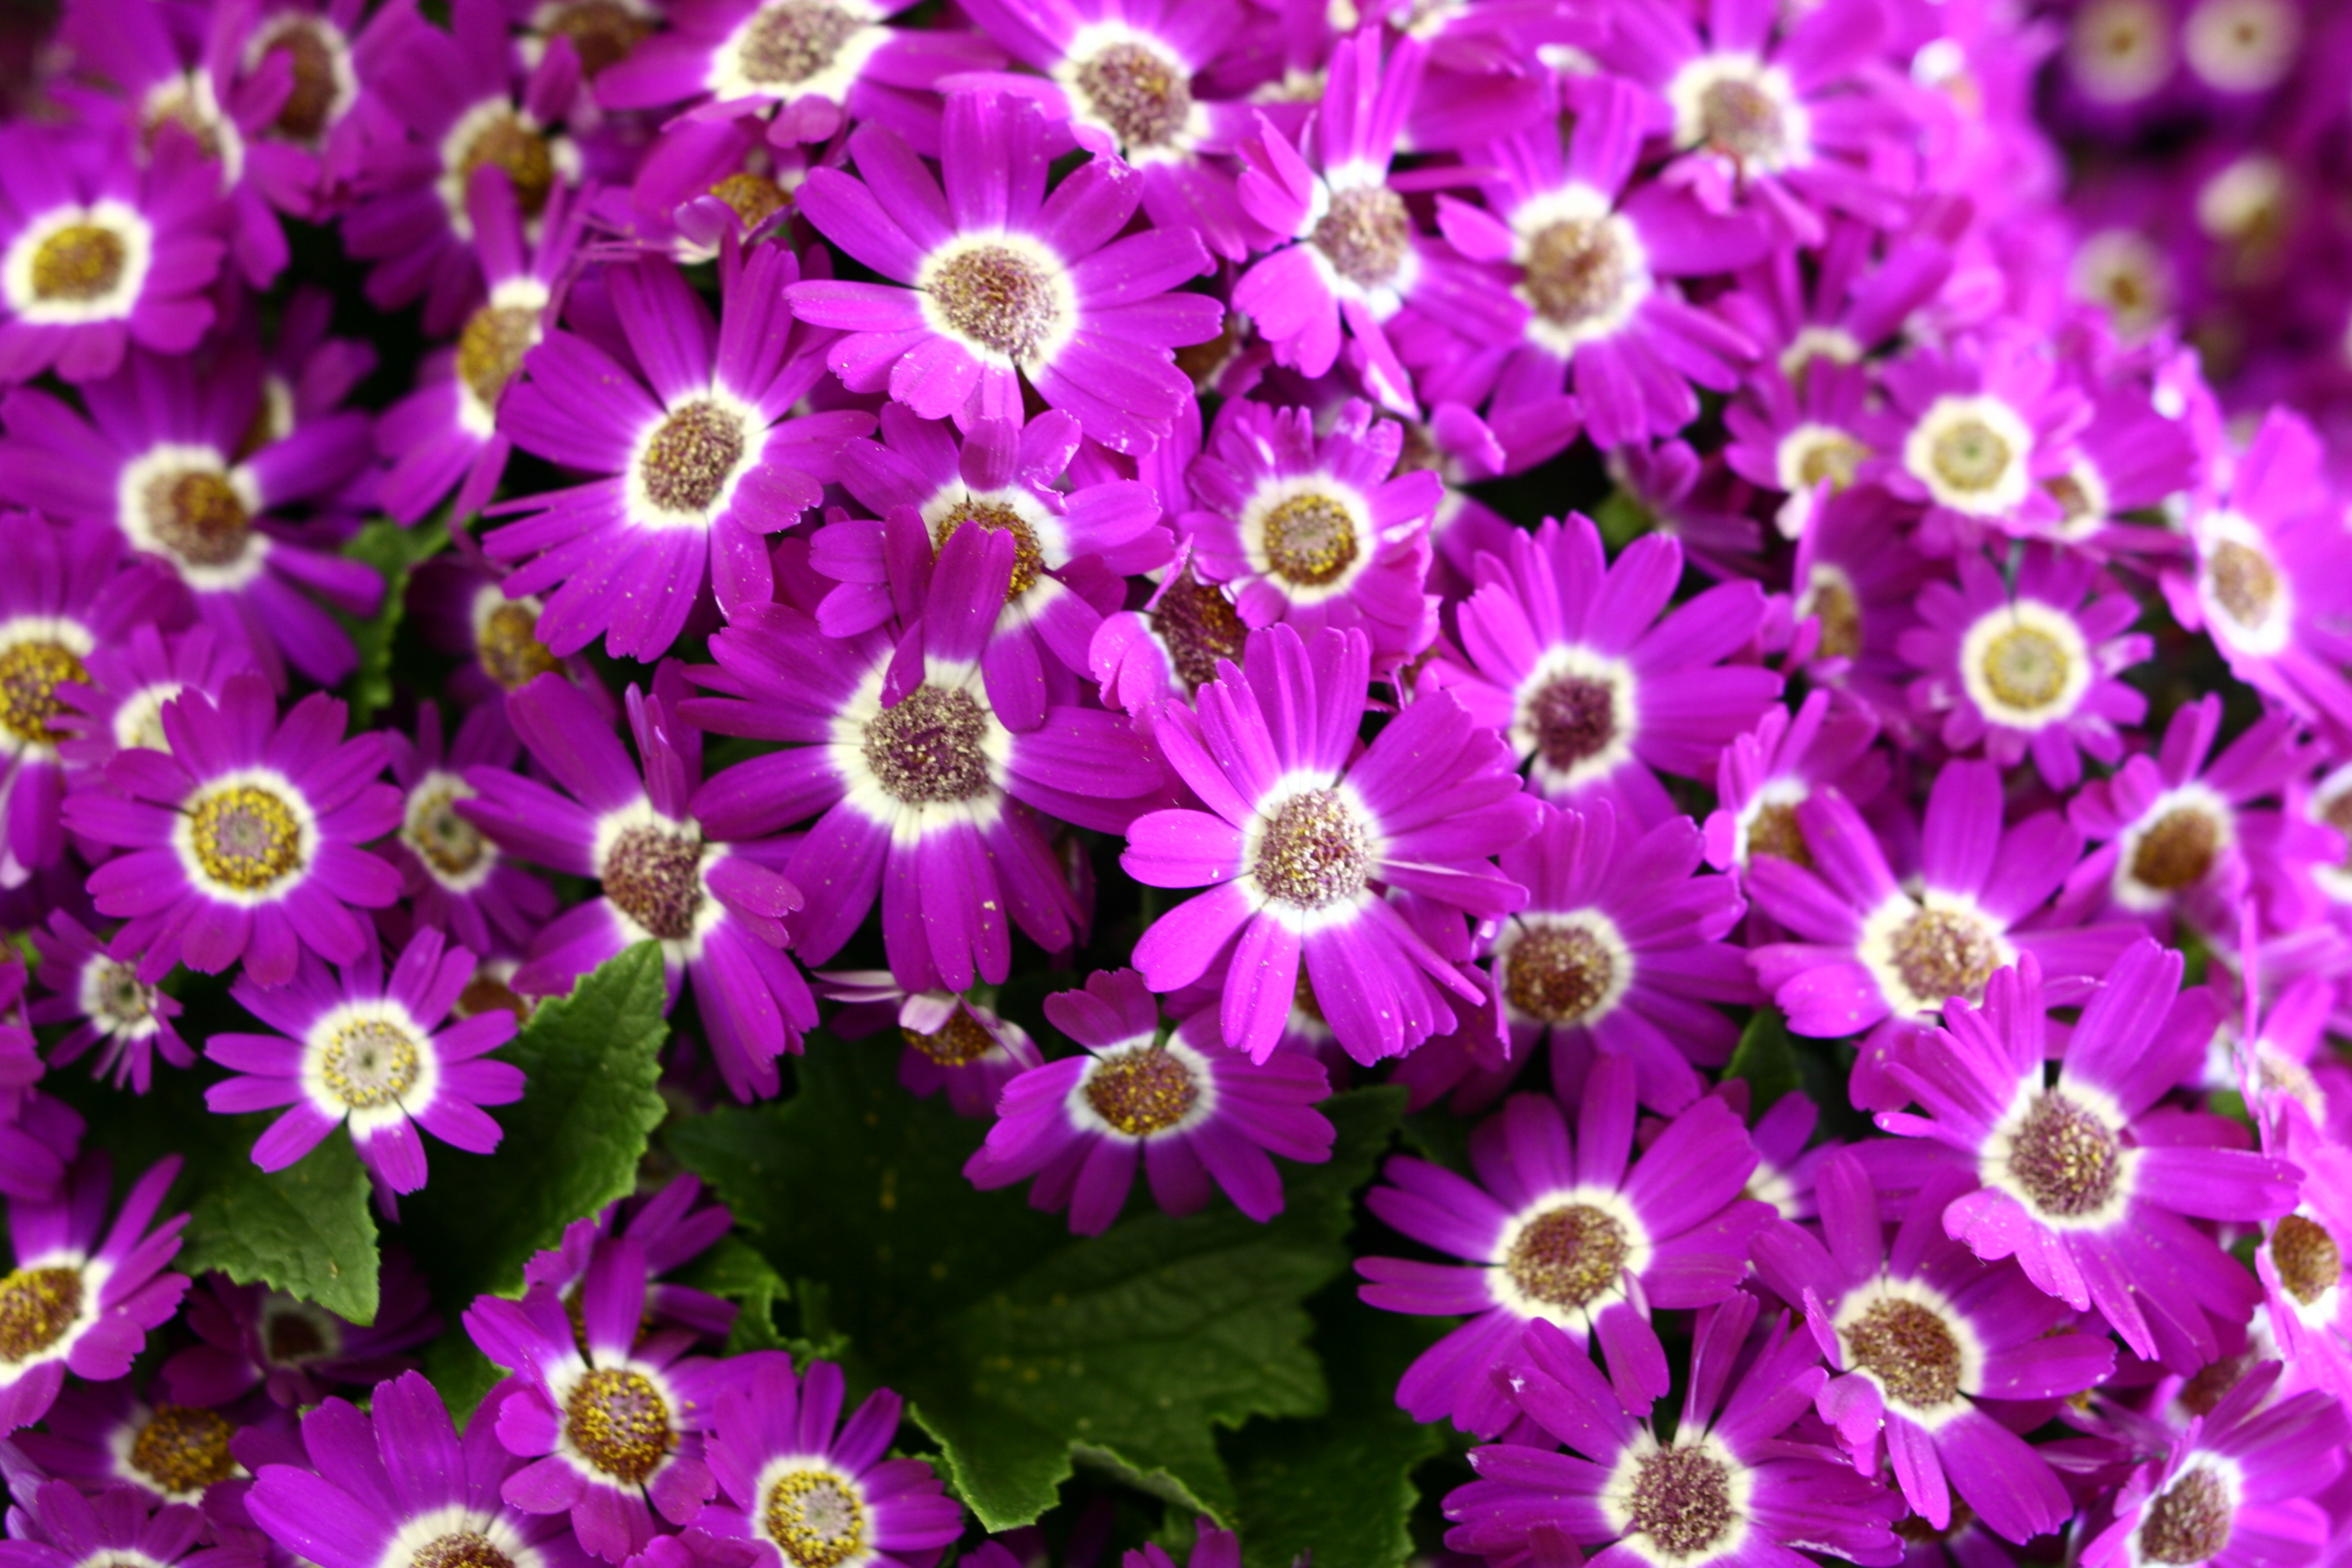 Free photos of spring flowers banner royalty free Purple Pink Spring Flowers | Flowers| Free Nature Pictures by ... banner royalty free